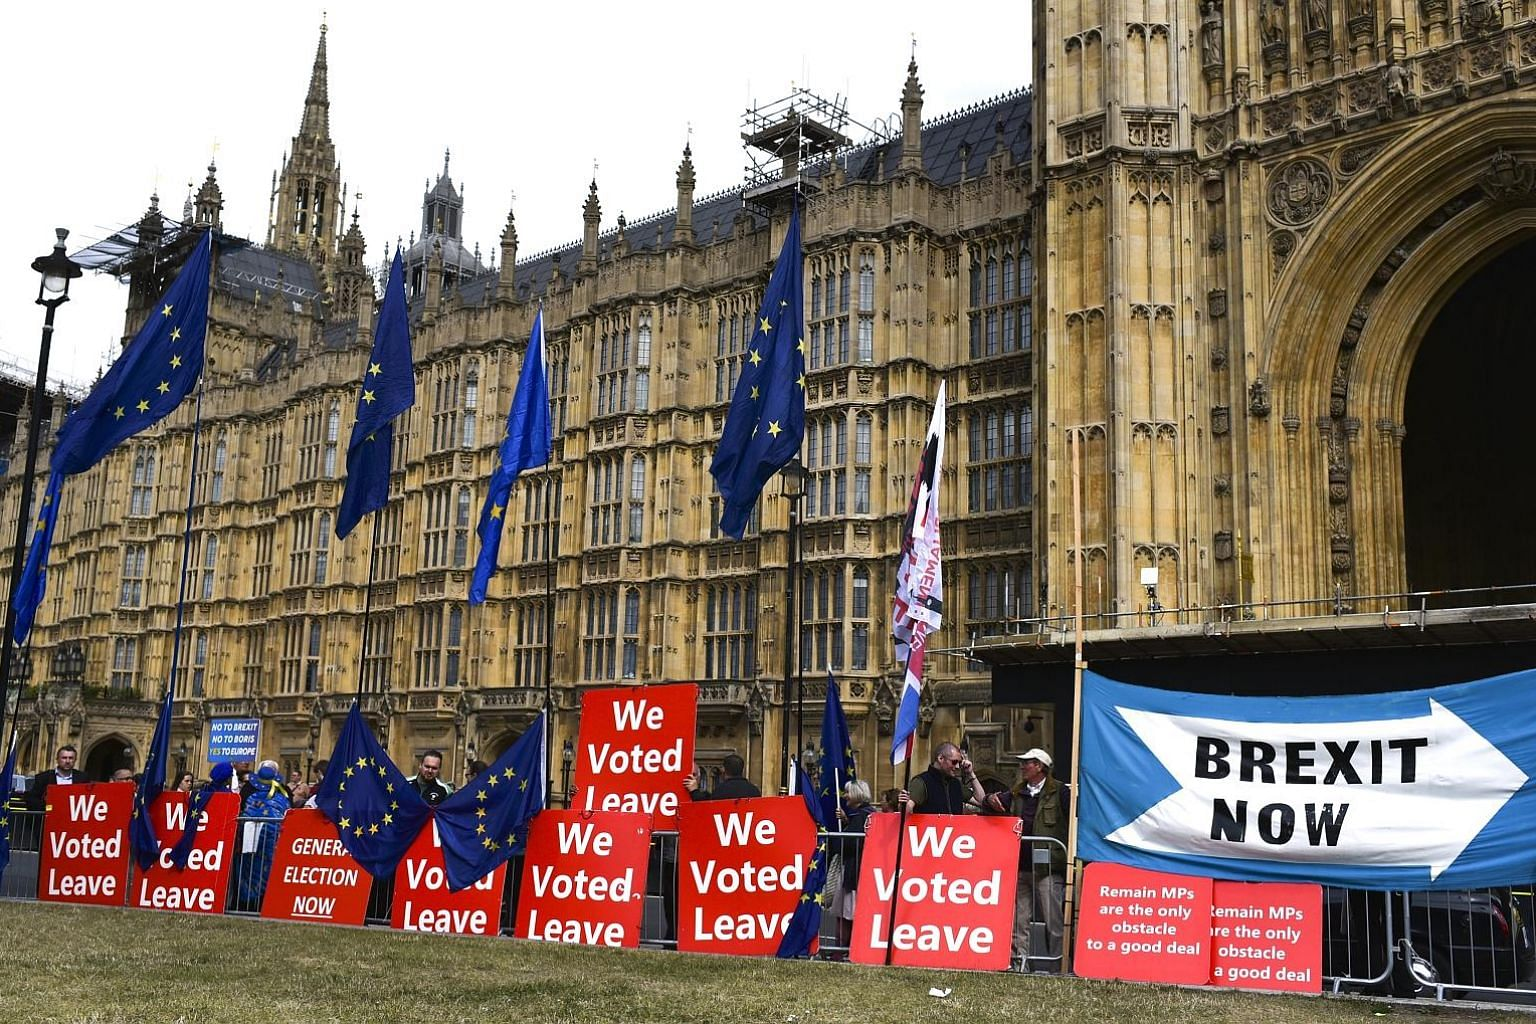 Pro-Brexit placards and European Union flags lining the outside of the Houses of Parliament in London on Thursday.